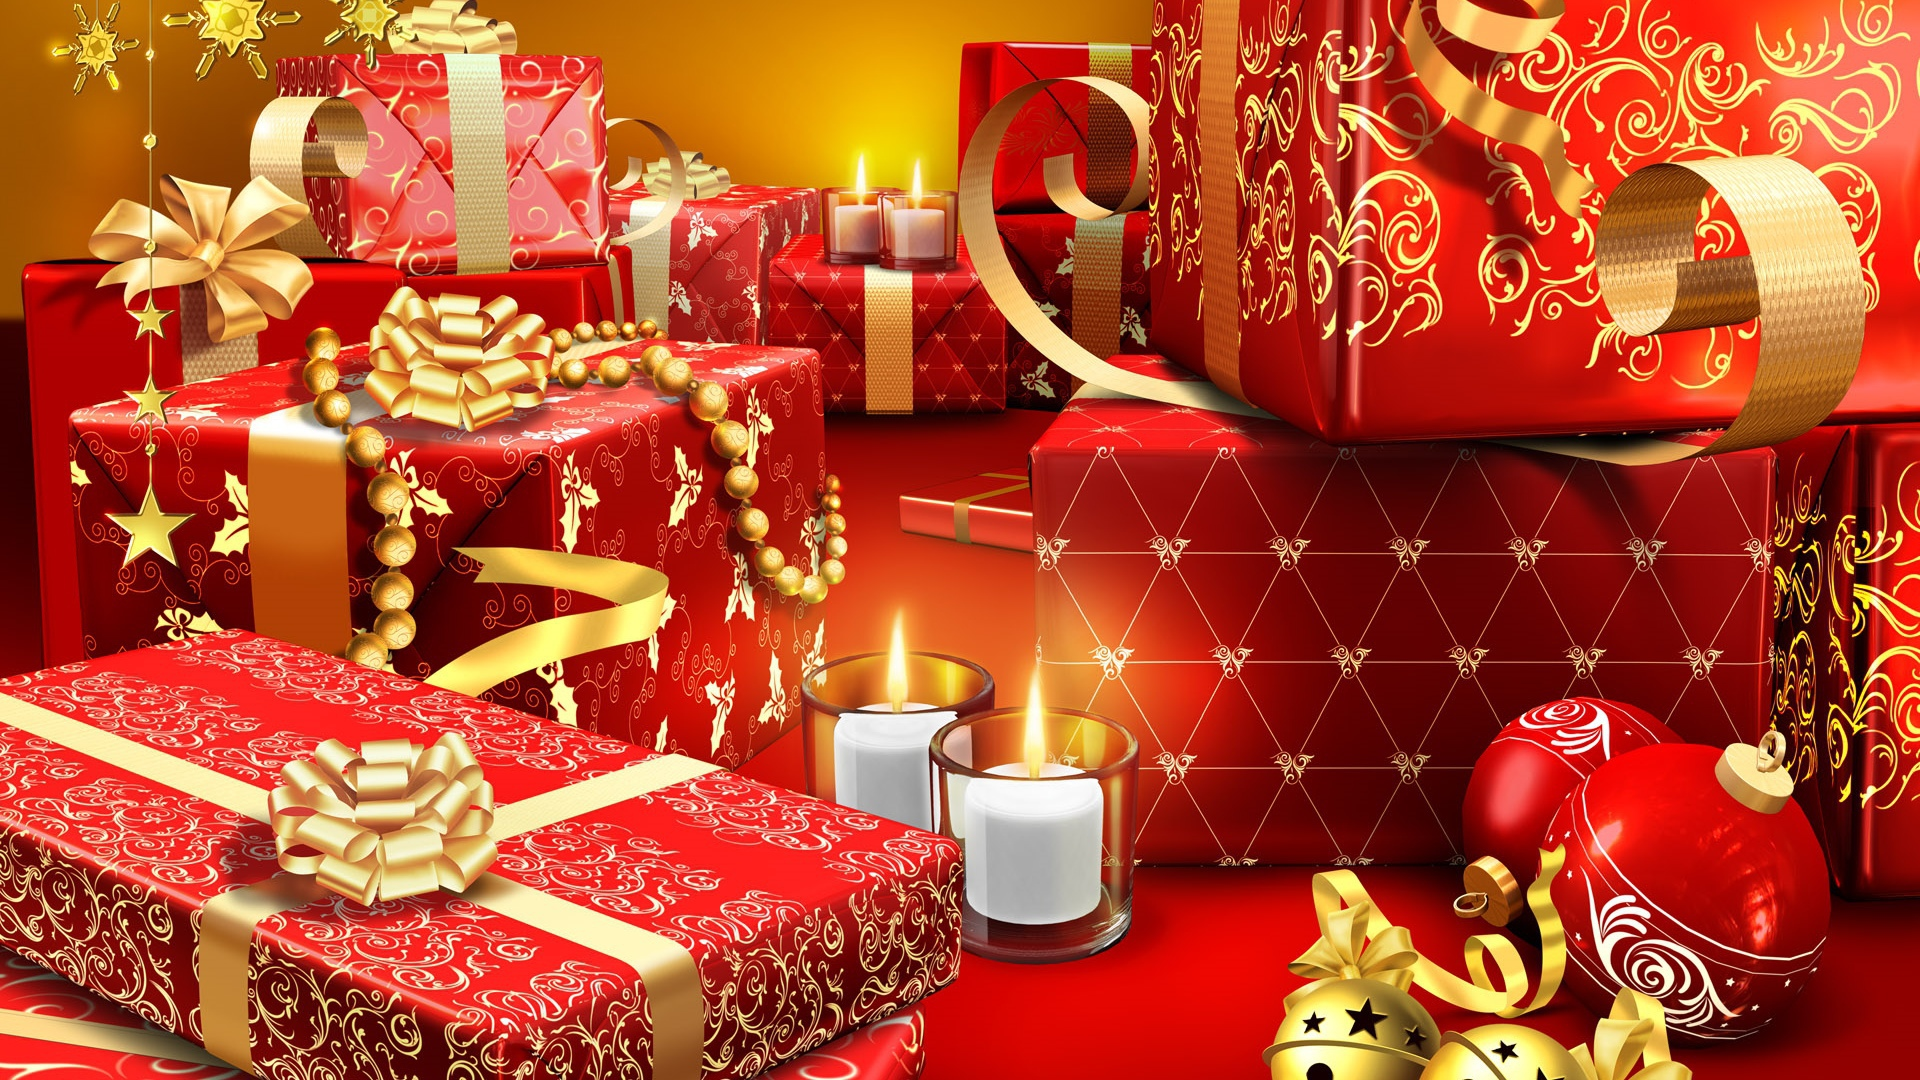 Red And Gold Christmas Gifts Christmas